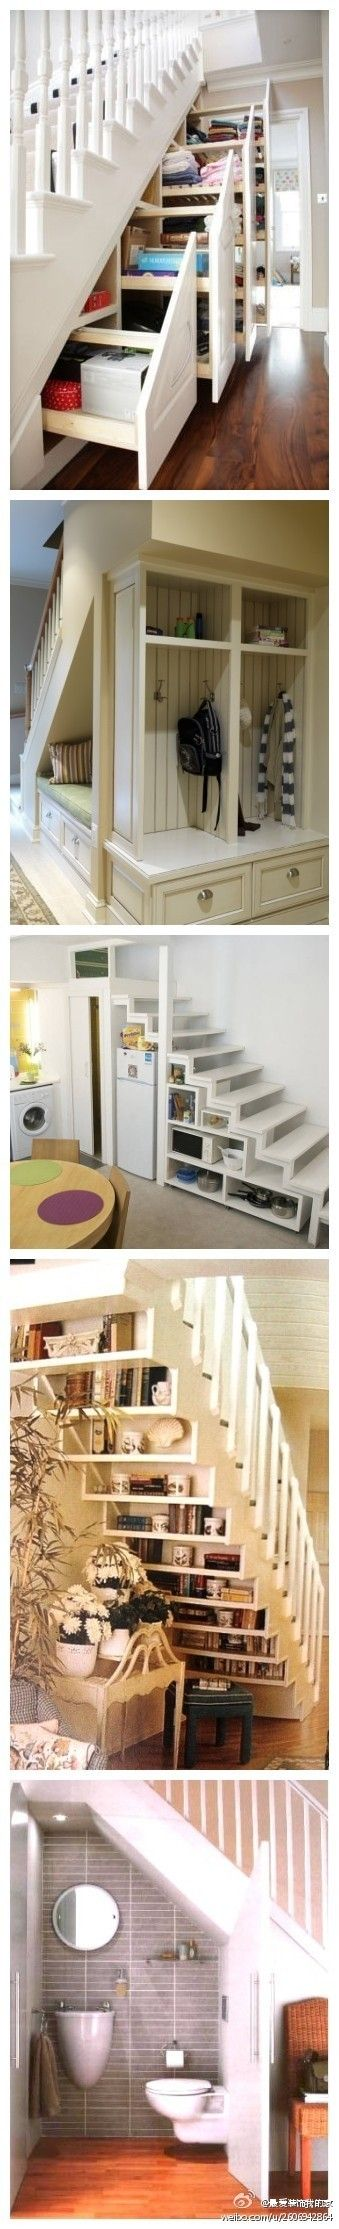 Stair storage. Awesome idea.